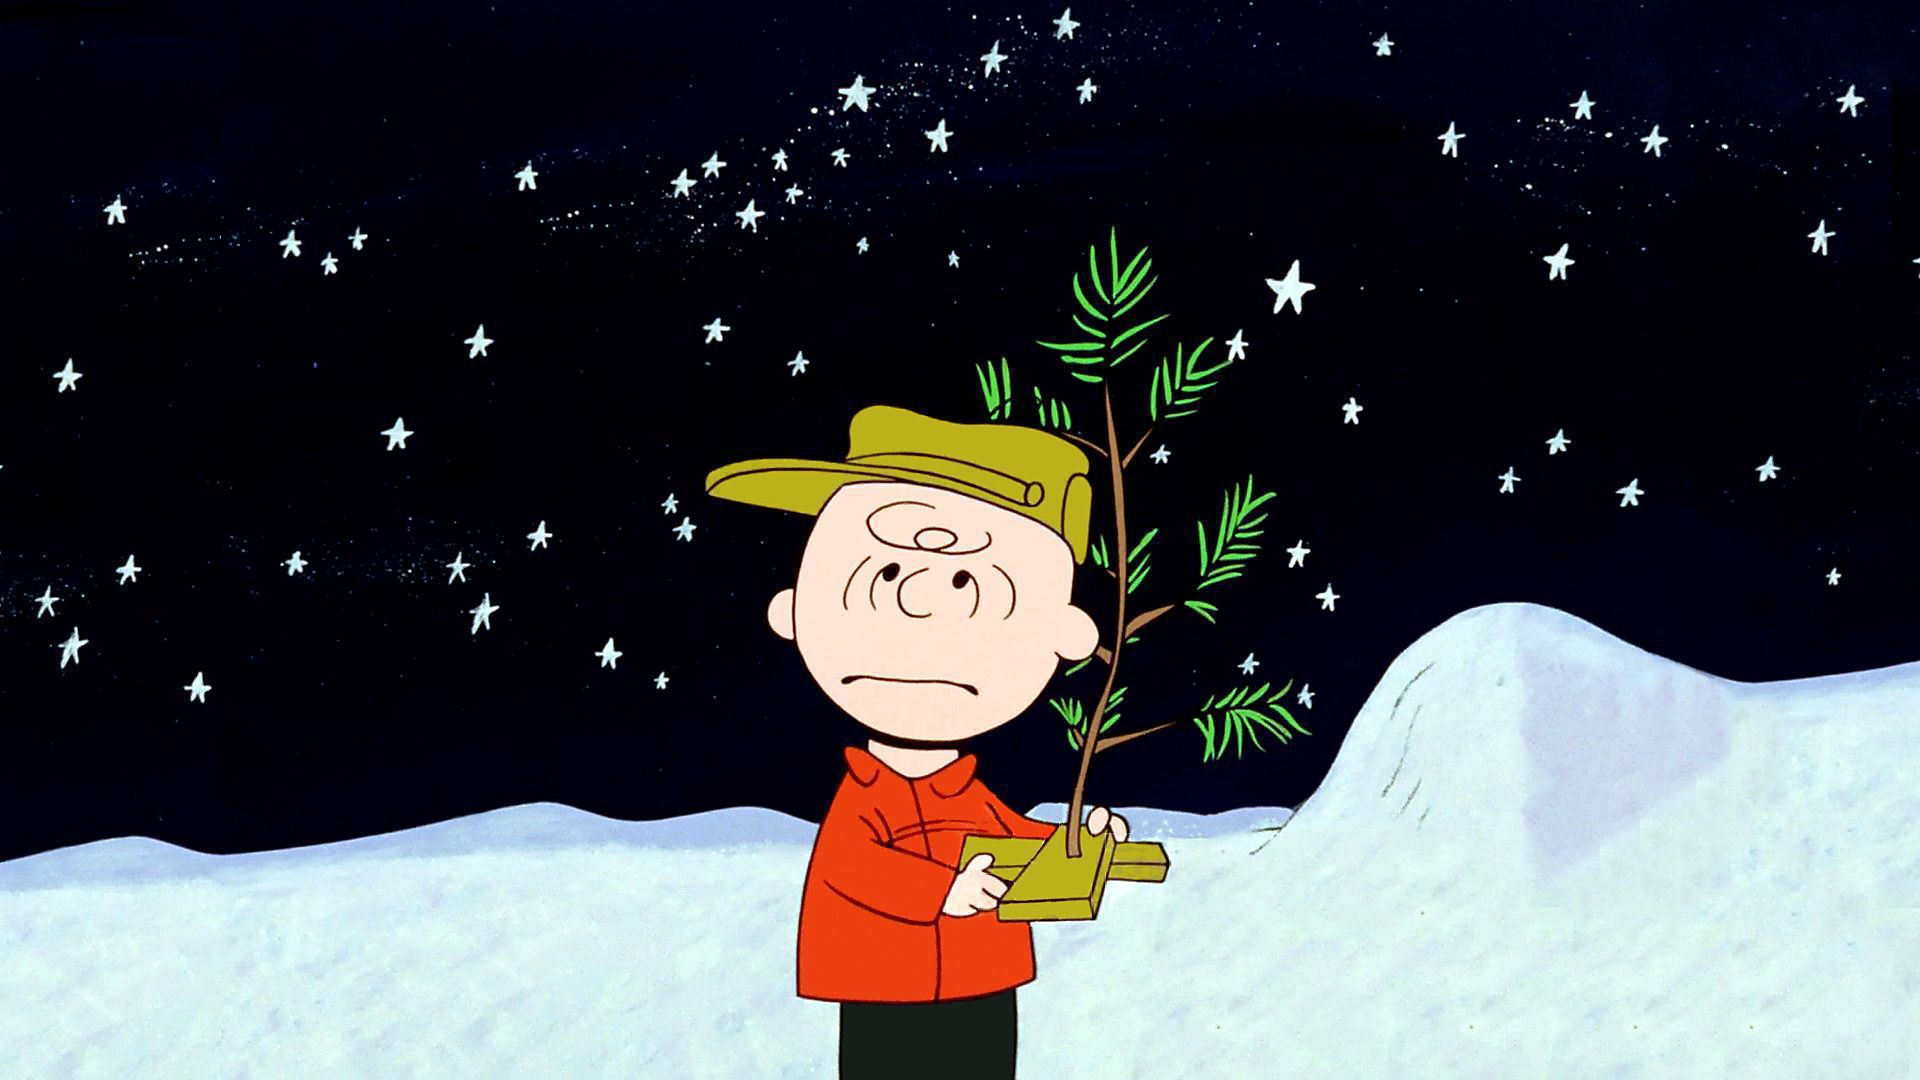 A Charlie Brown Christmas Images